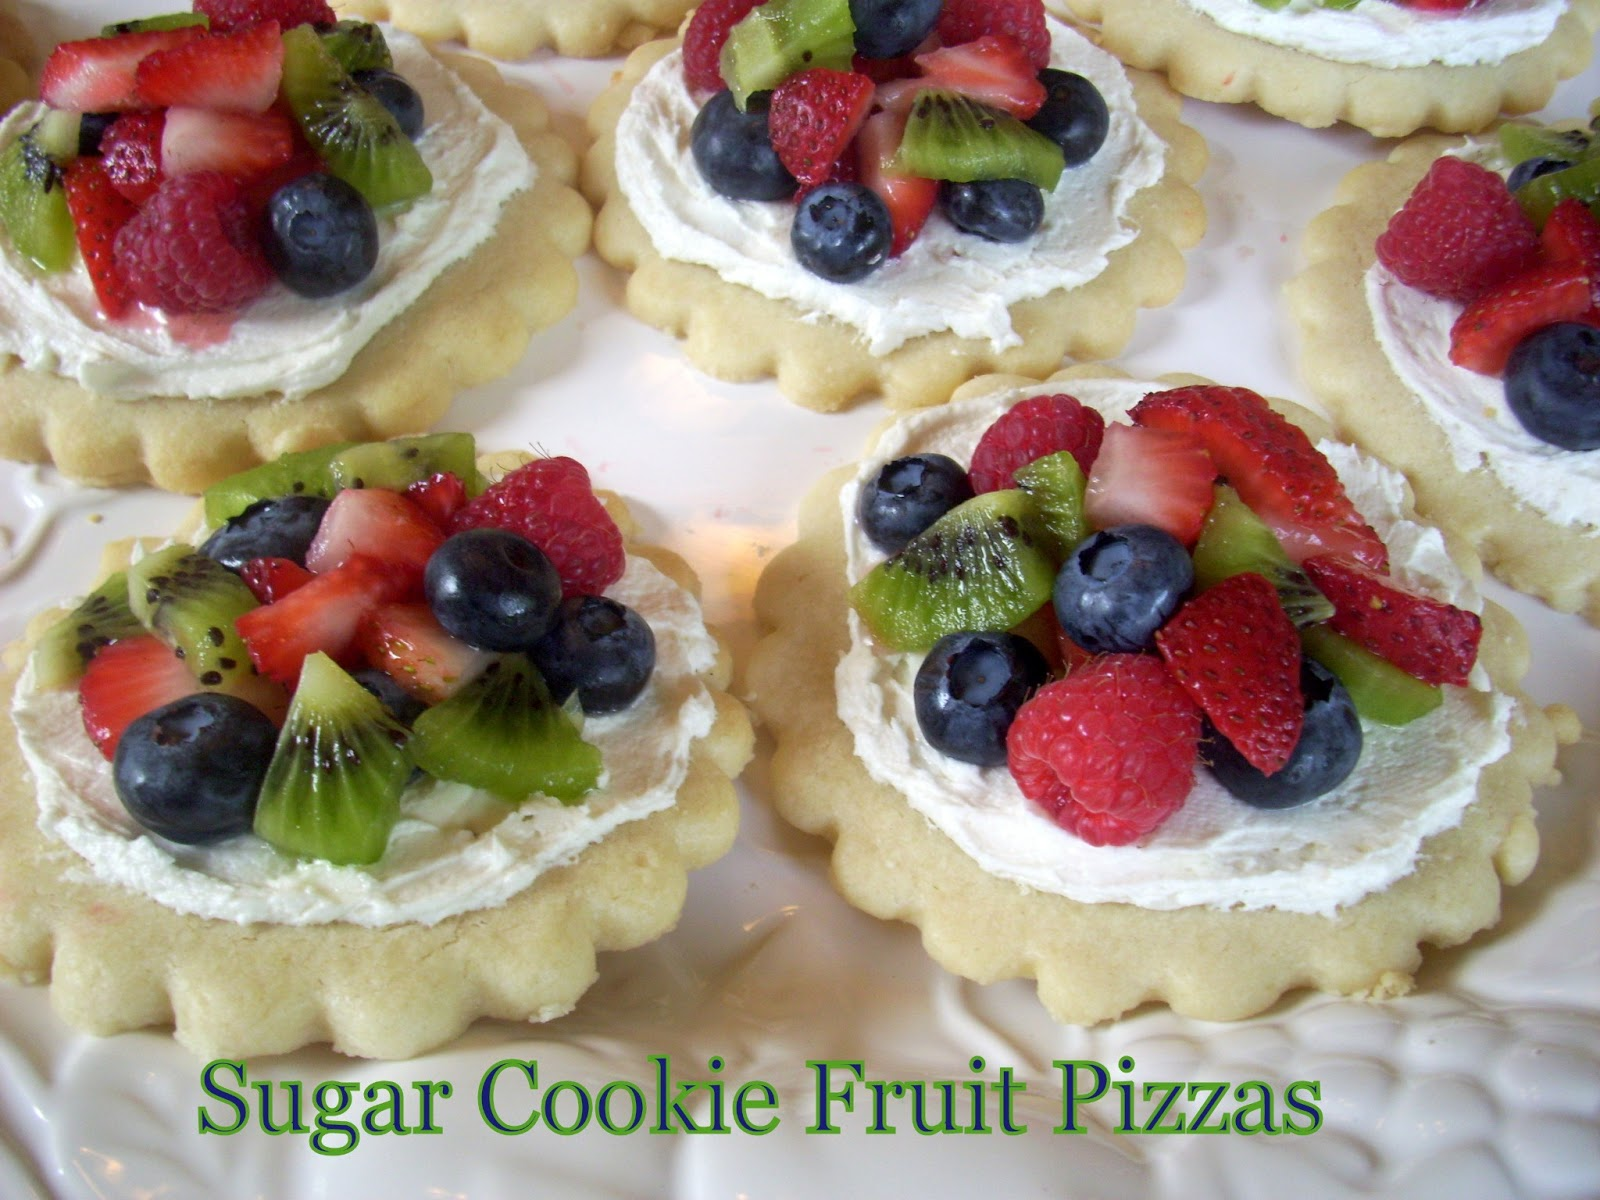 Flavors by Four: Sugar Cookie Fruit Pizzas